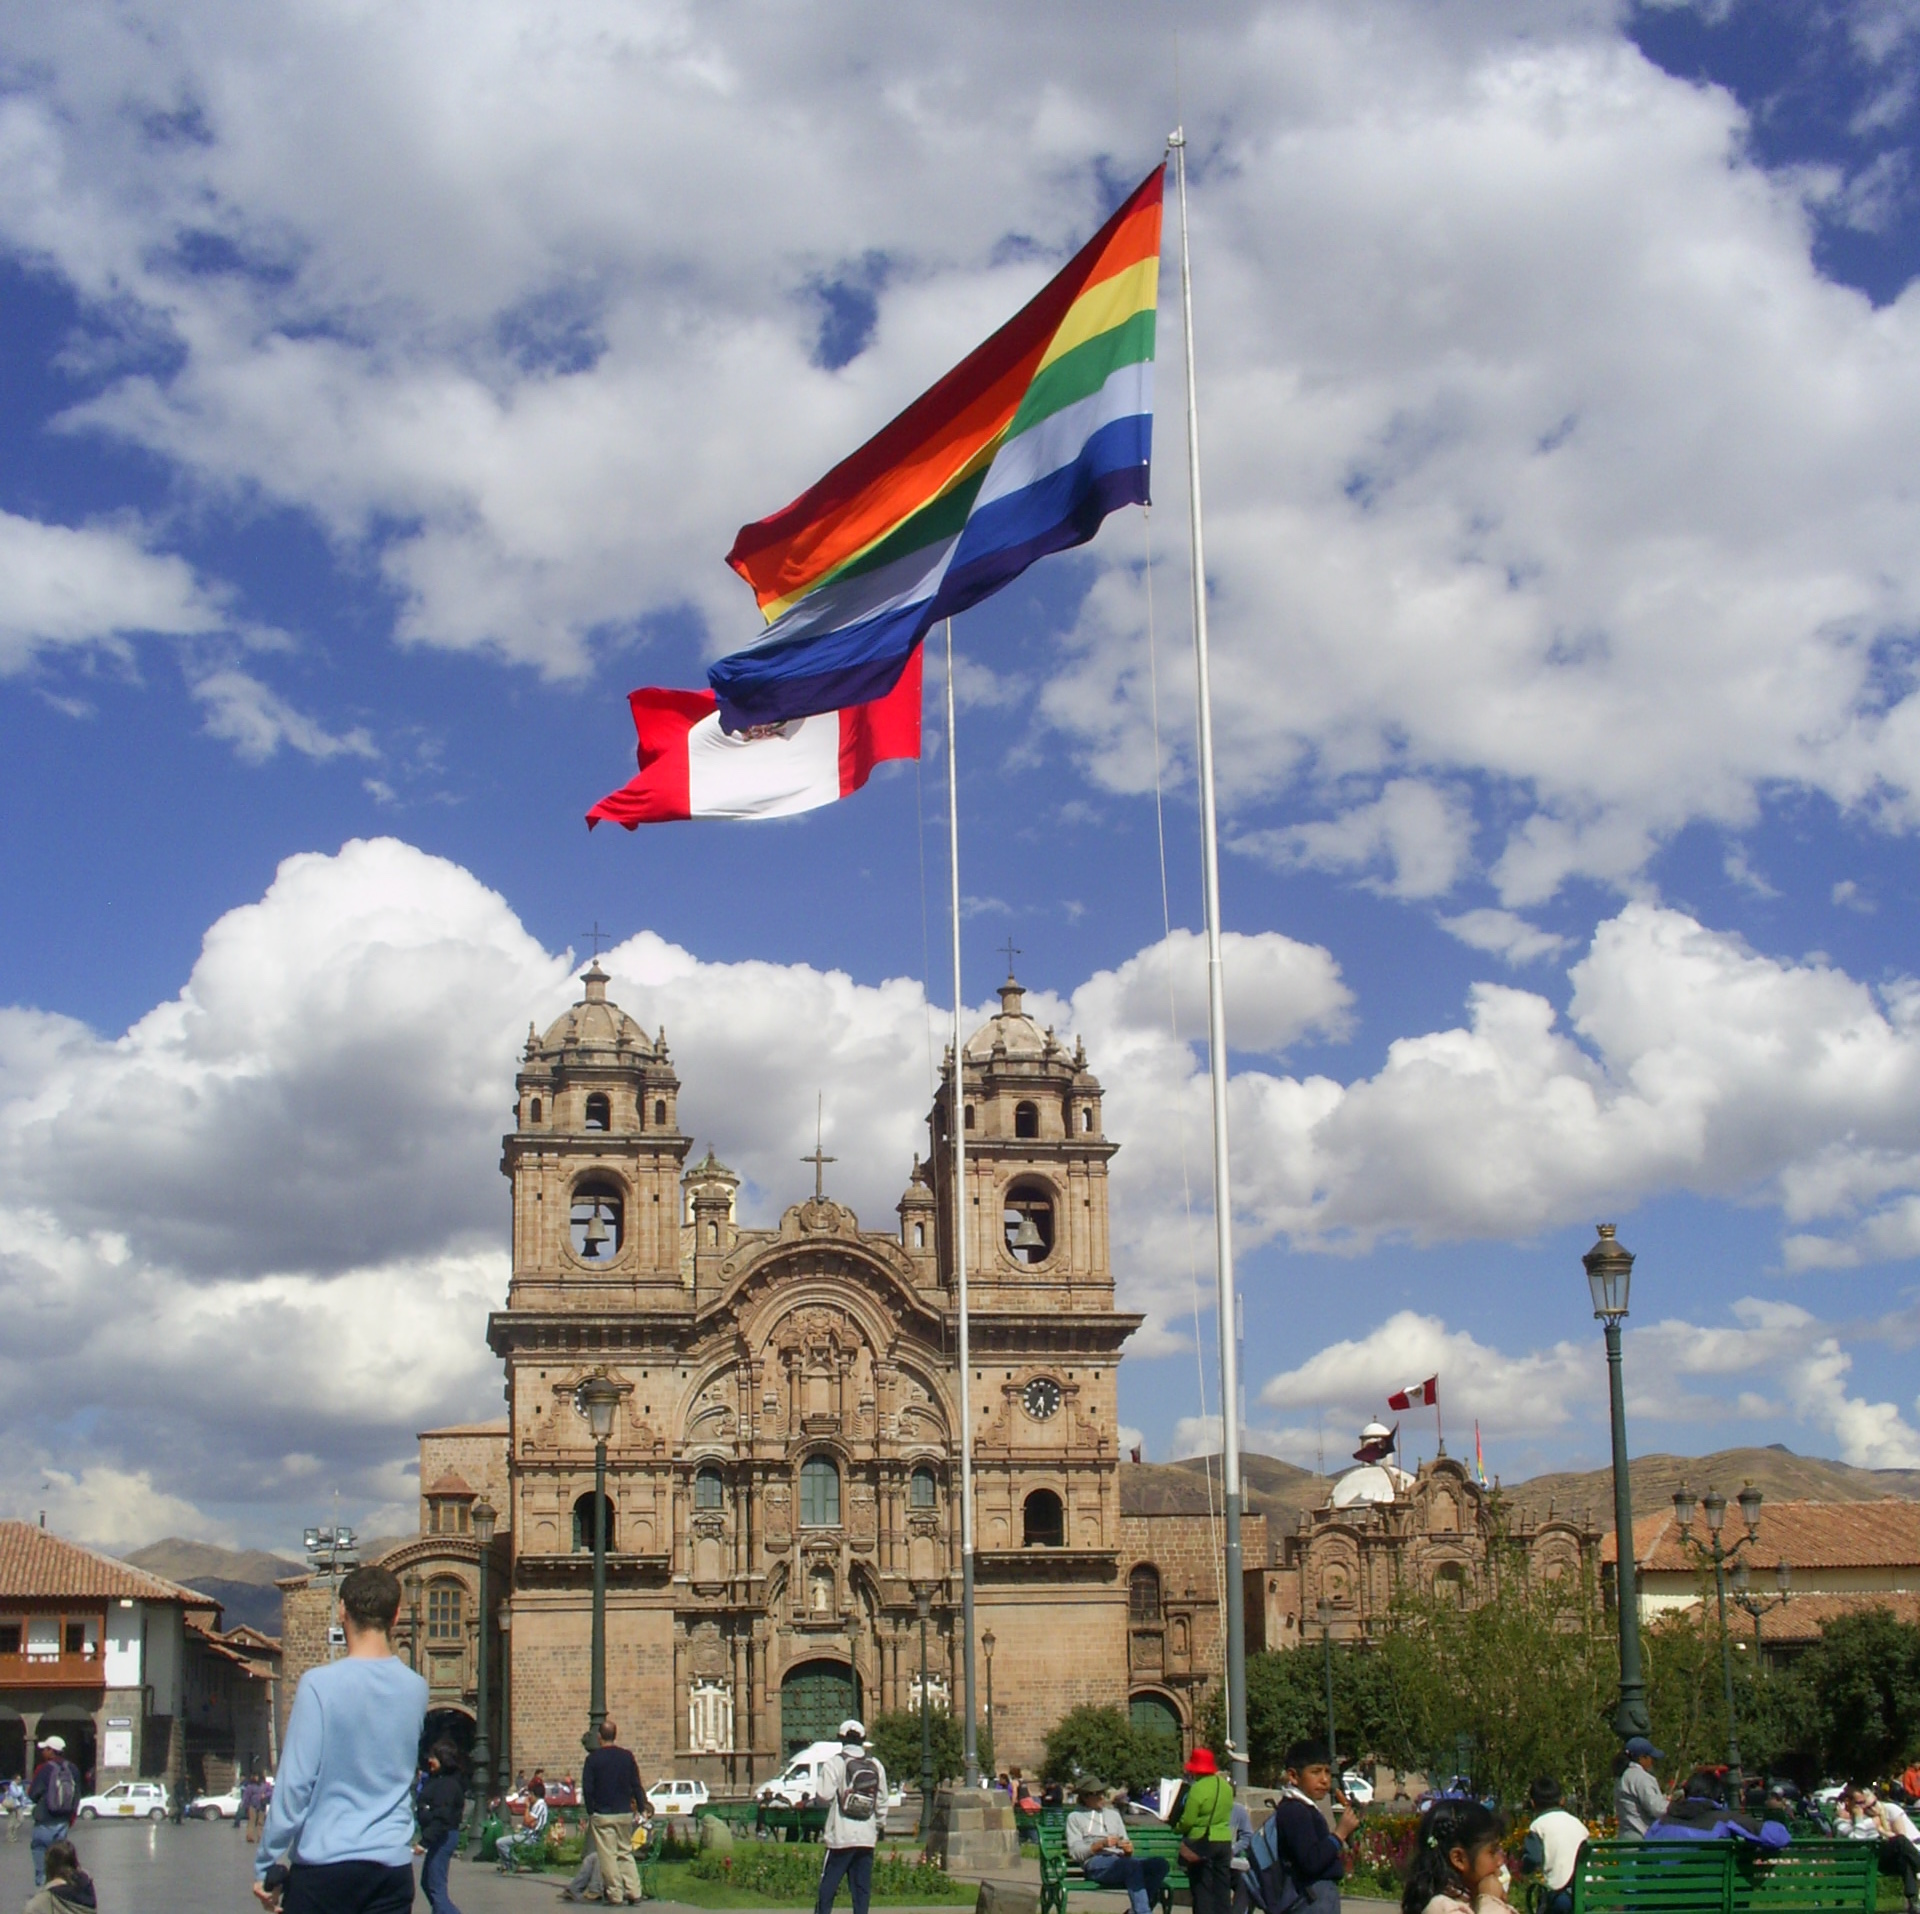 Flags in the Plaza de Armas, Cuzco